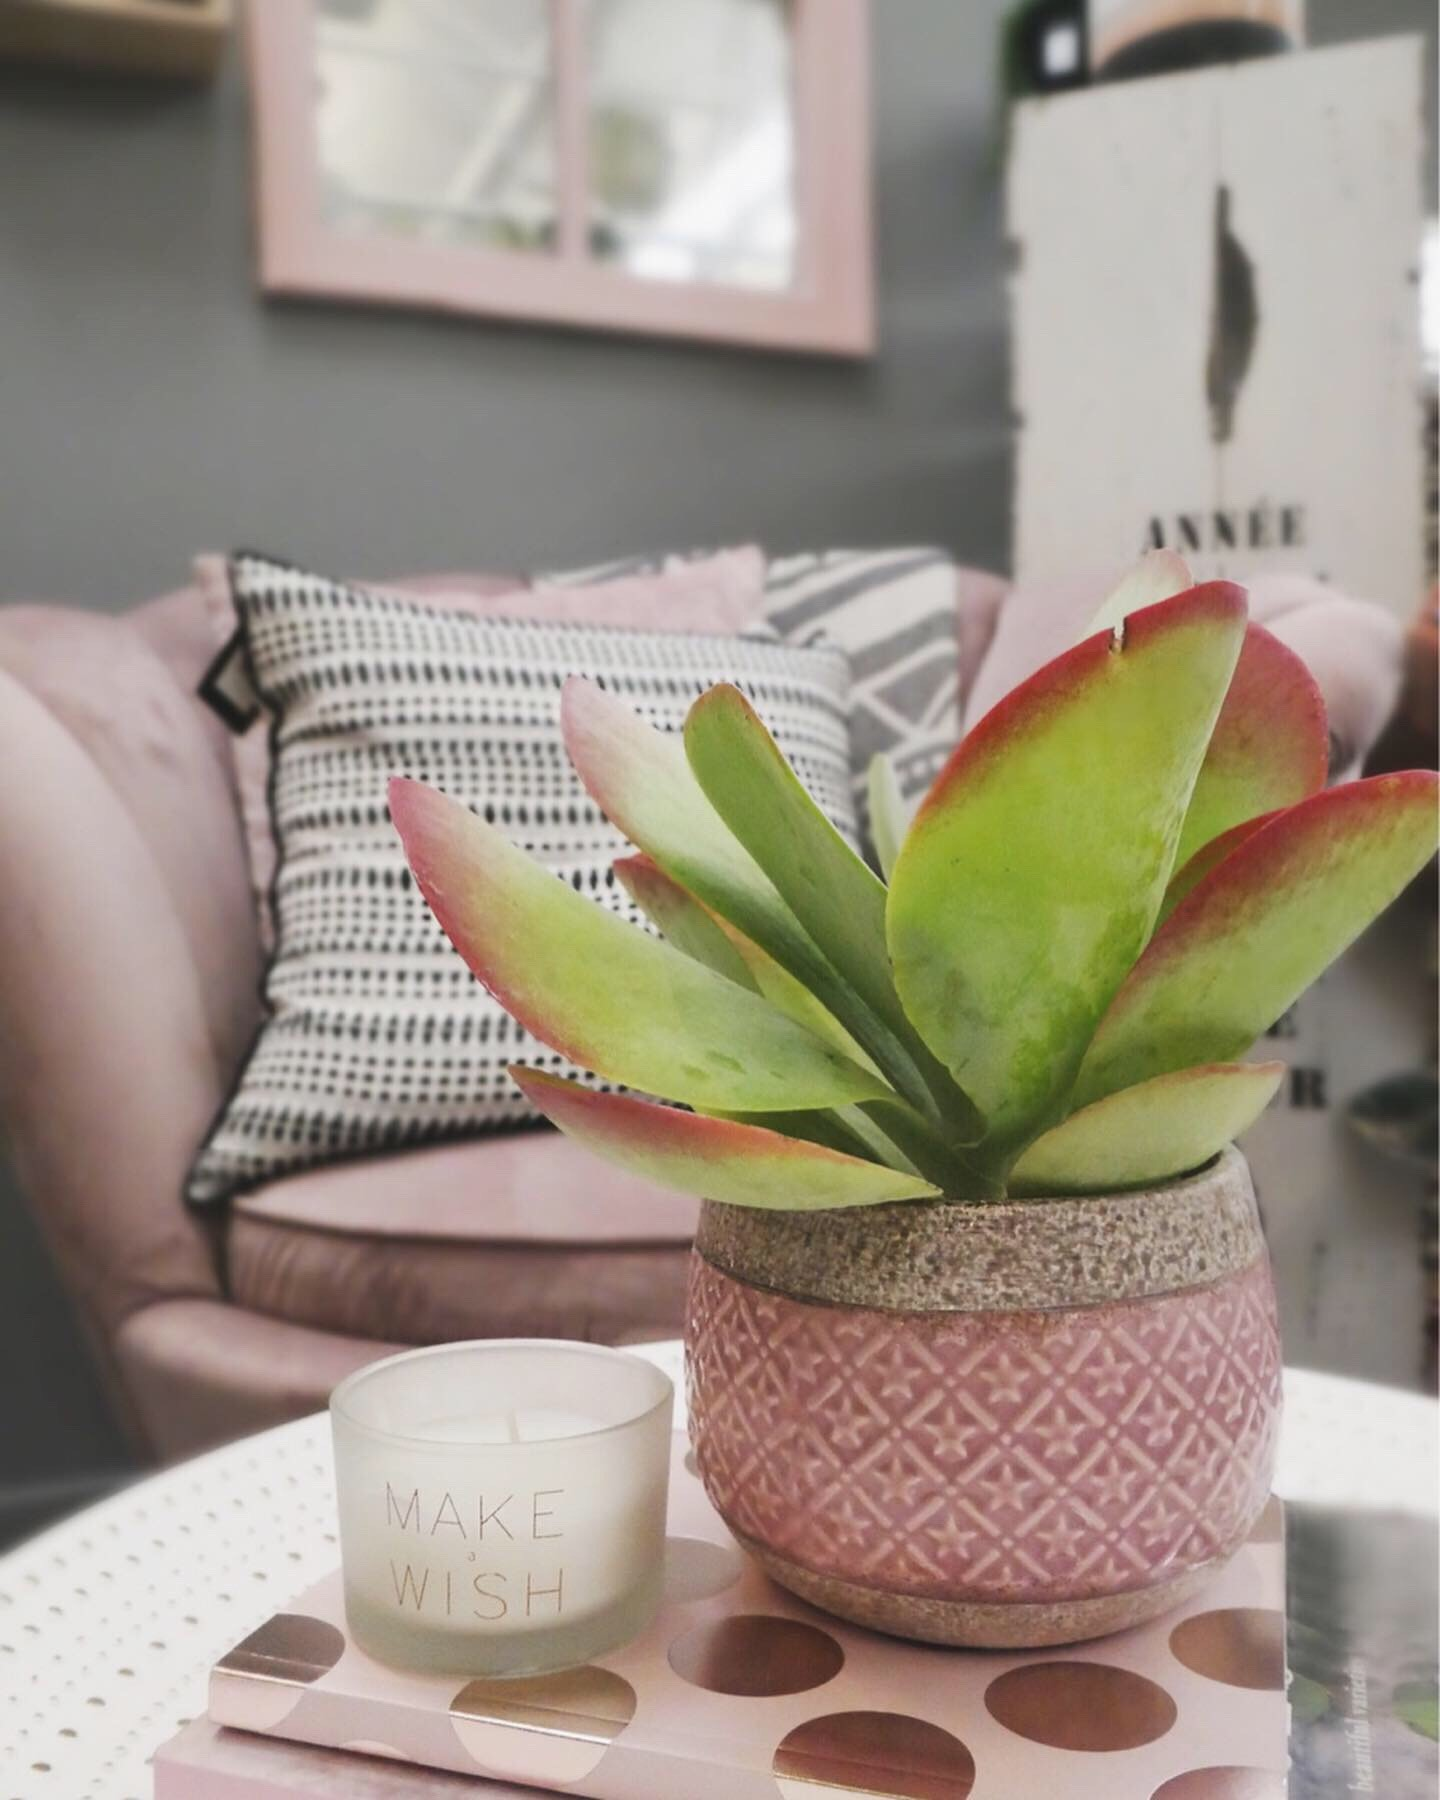 Houseplant happy with pinks and greens! - Be sure to check out our stores for home inspiration for those important corners!